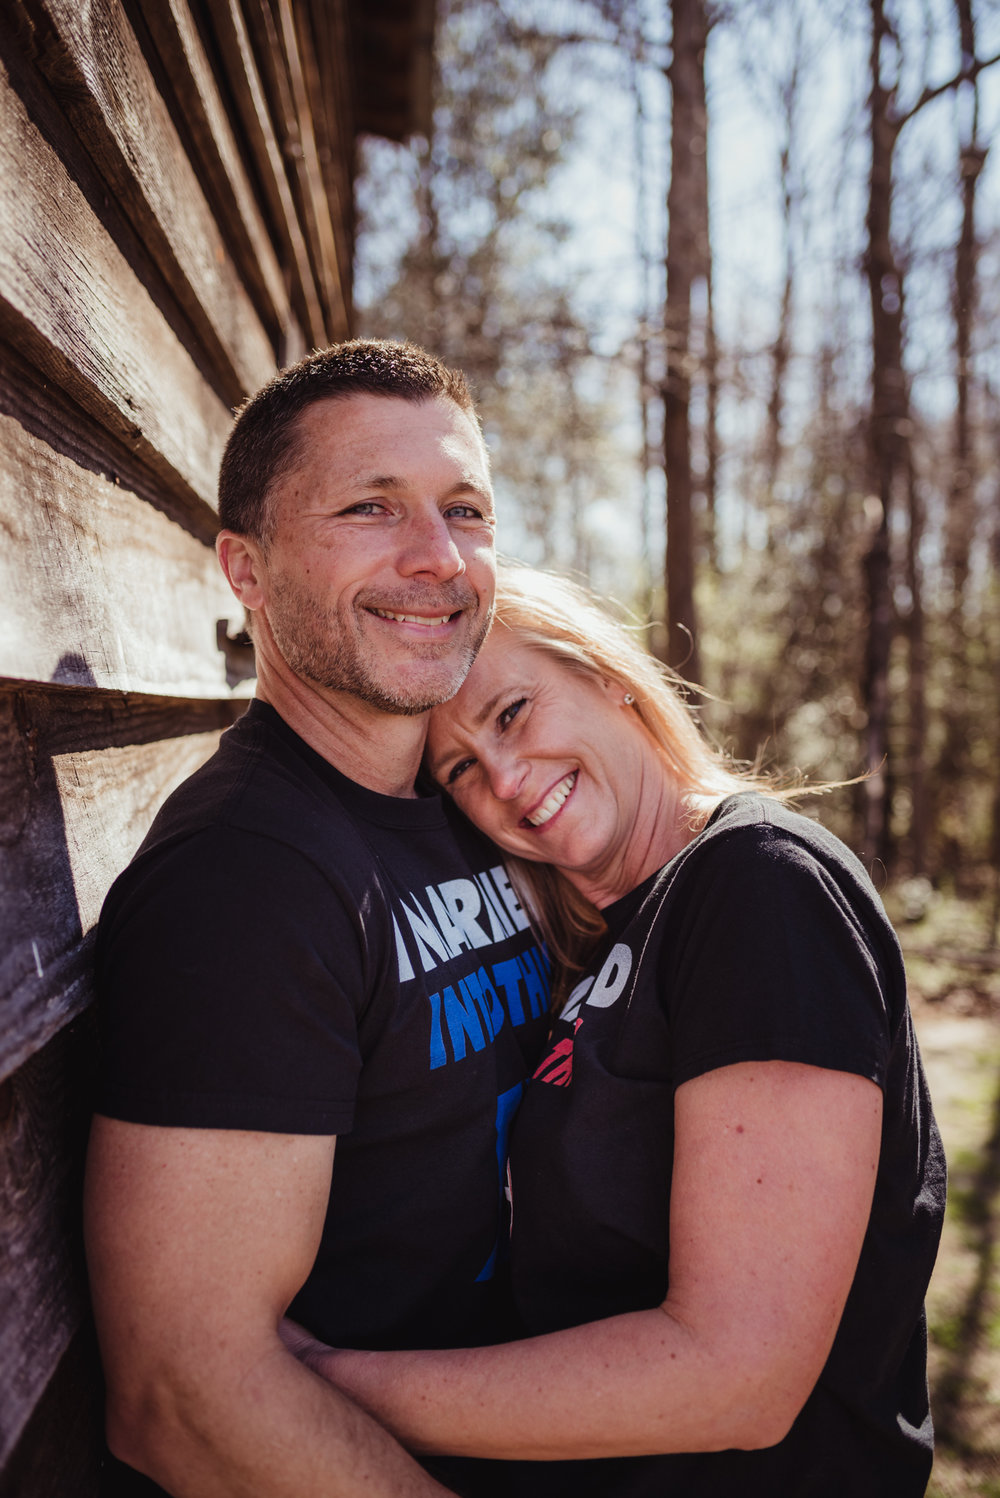 The couple pose for the camera at a barn in the morning light during their engagement session with Rose Trail Images in Wake Forest, NC.